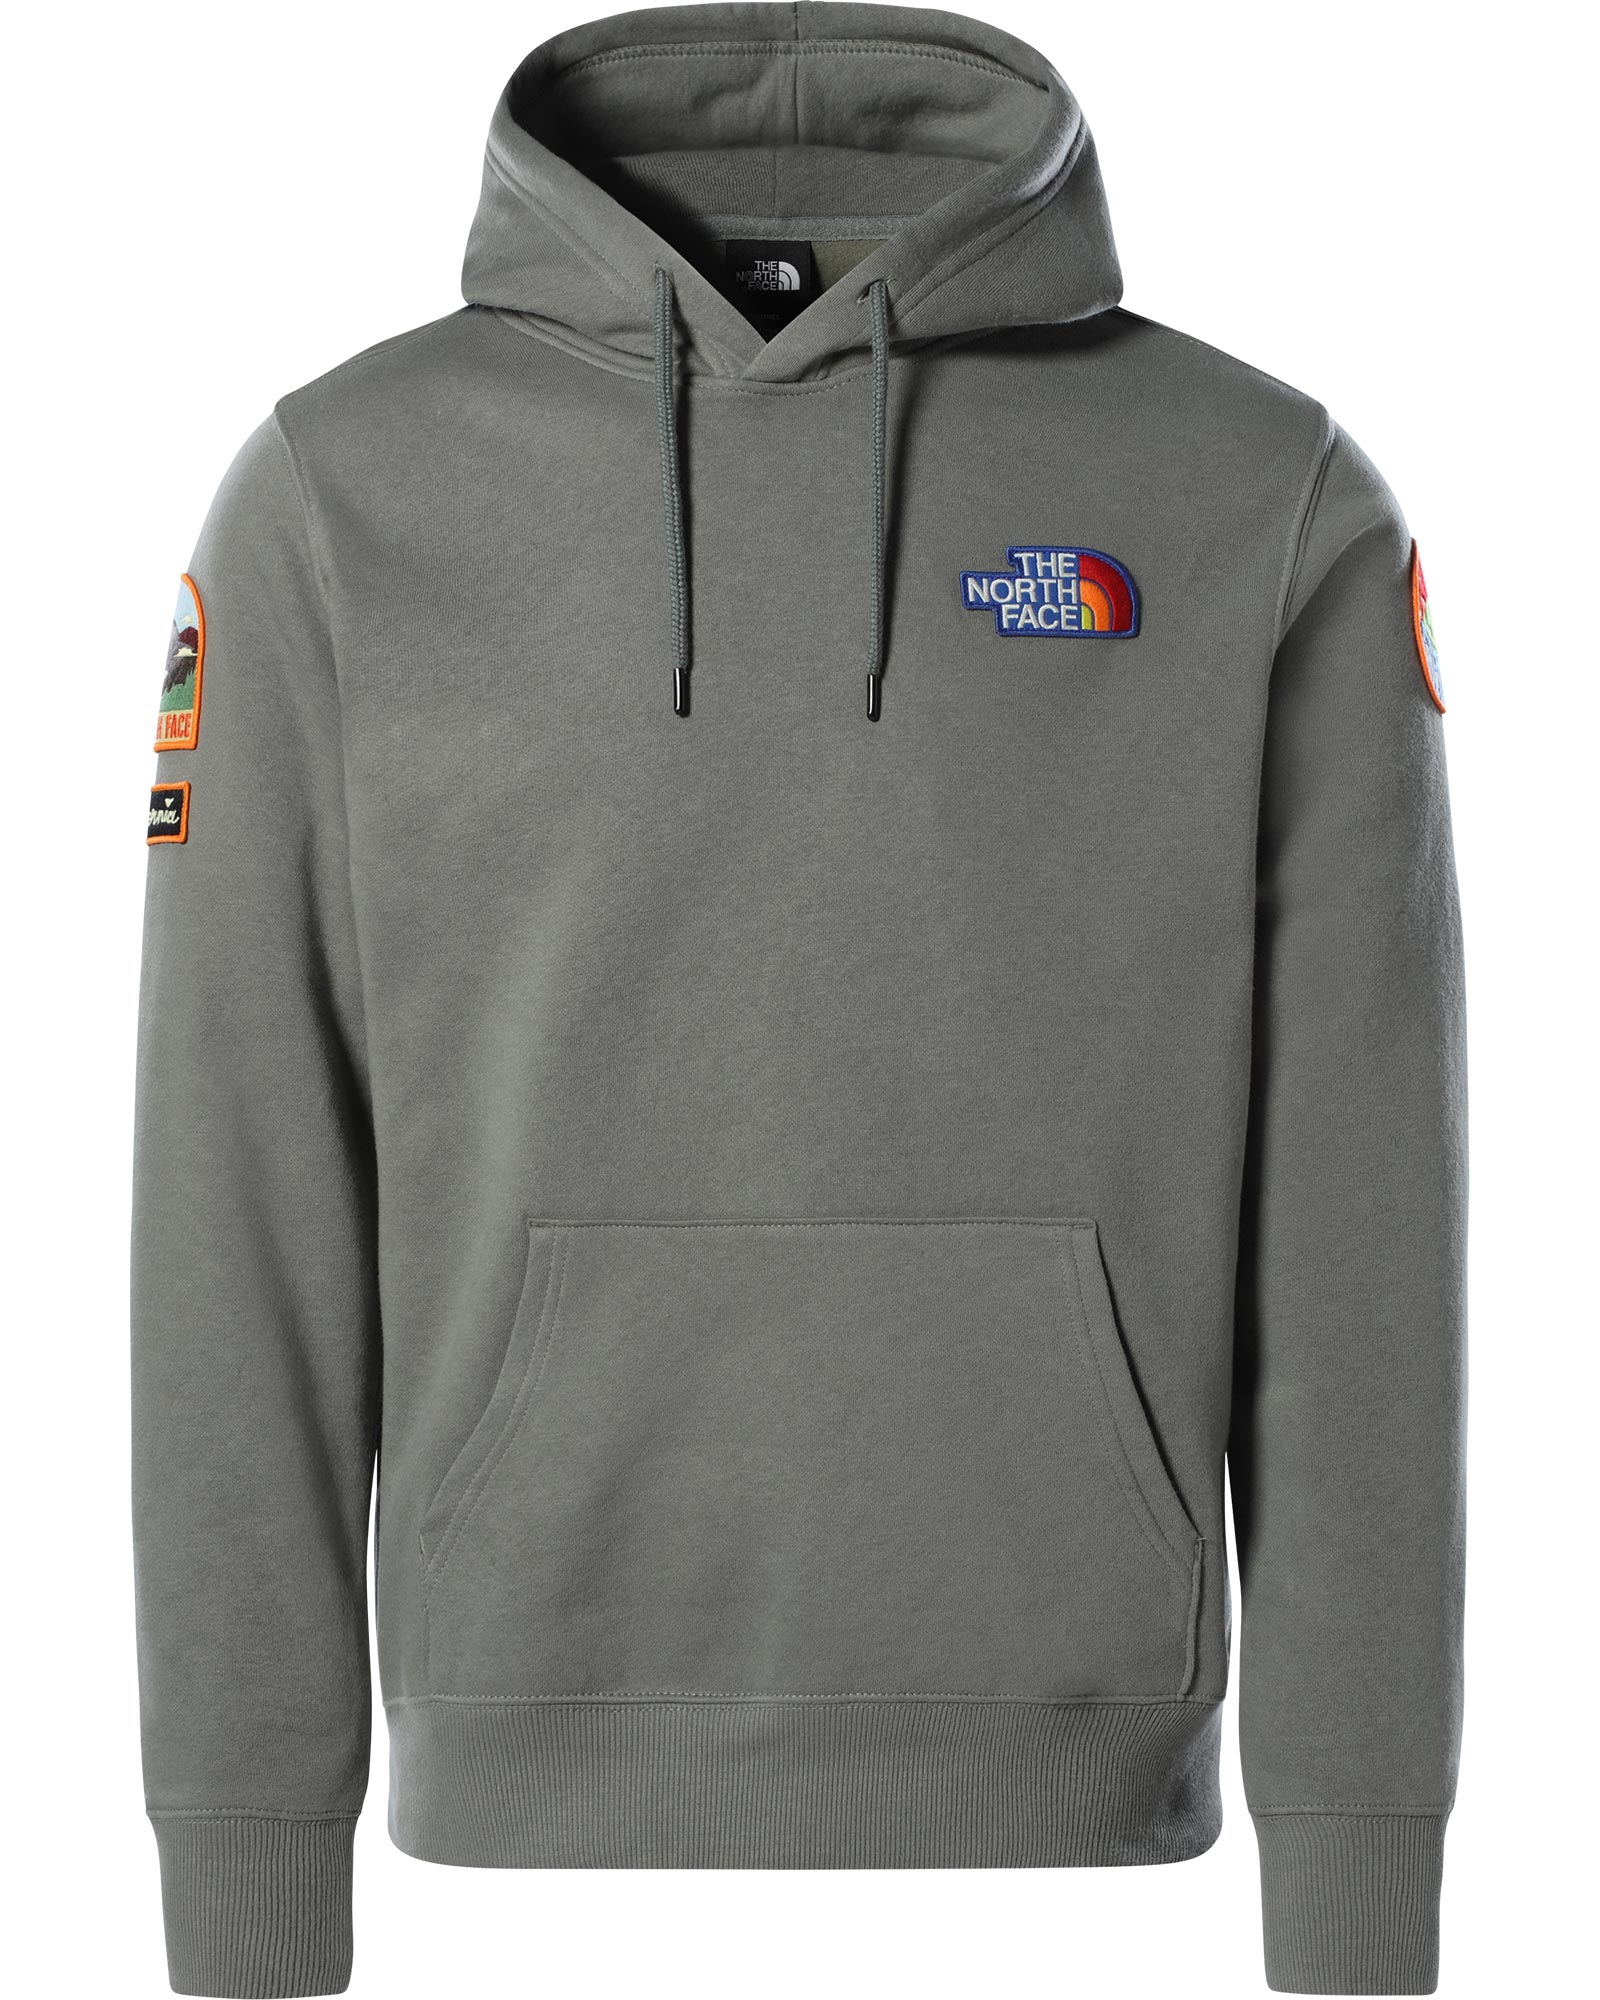 The North Face Men's Patches Pullover Hoodie